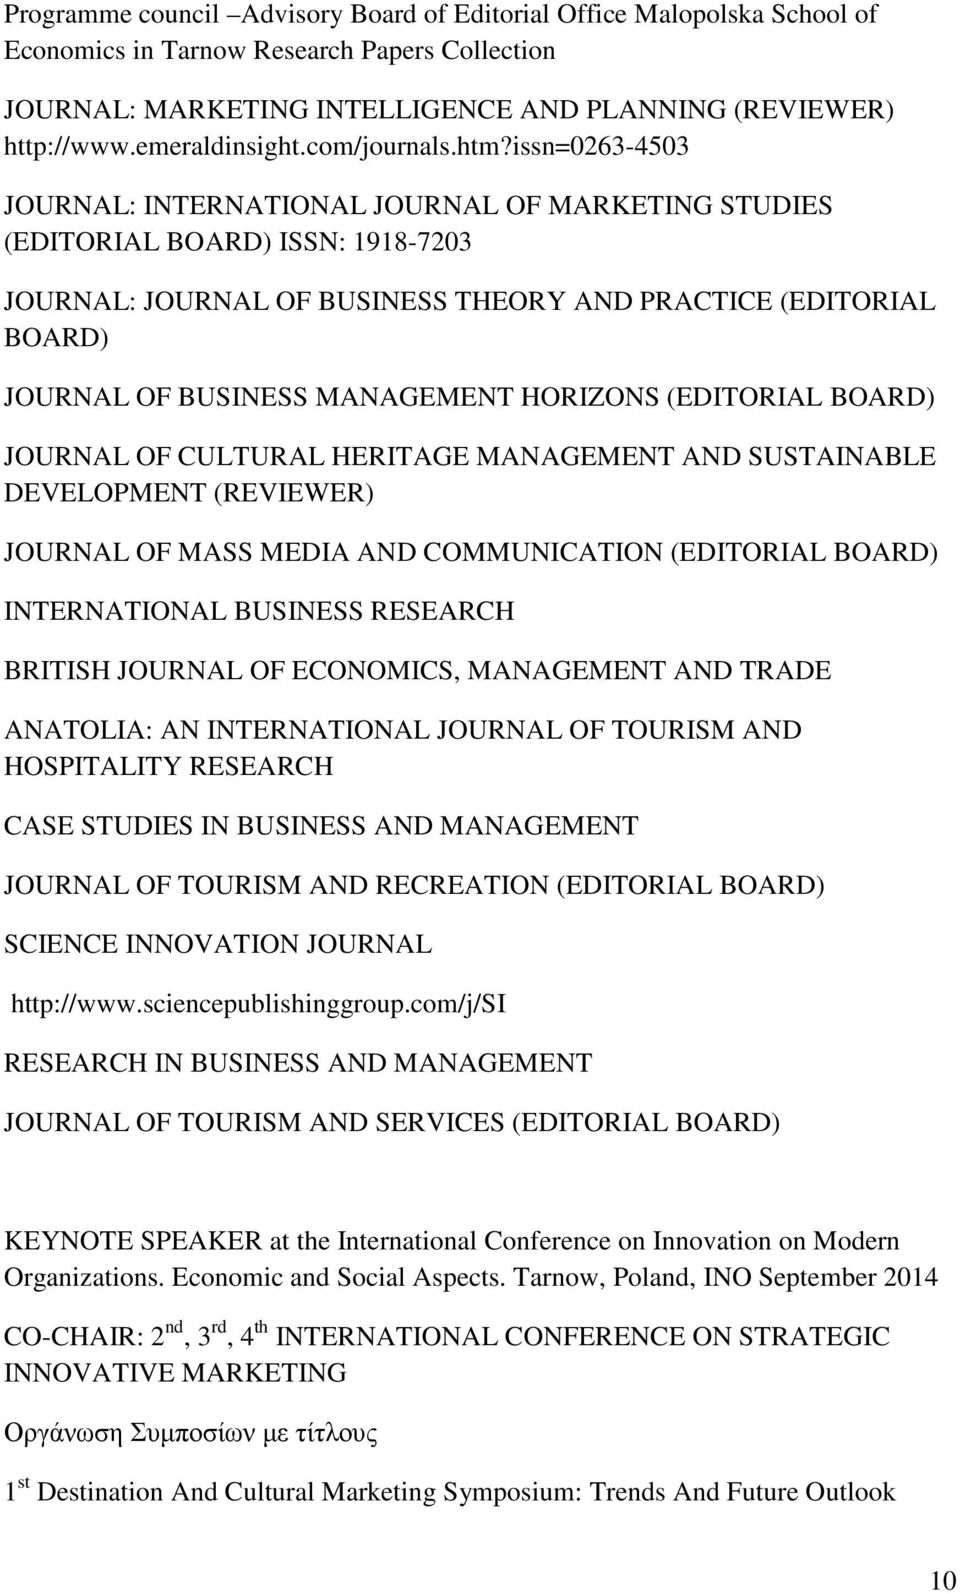 issn=0263-4503 JOURNAL: INTERNATIONAL JOURNAL OF MARKETING STUDIES (EDITORIAL BOARD) ISSN: 1918-7203 JOURNAL: JOURNAL OF BUSINESS THEORY AND PRACTICE (EDITORIAL BOARD) JOURNAL OF BUSINESS MANAGEMENT